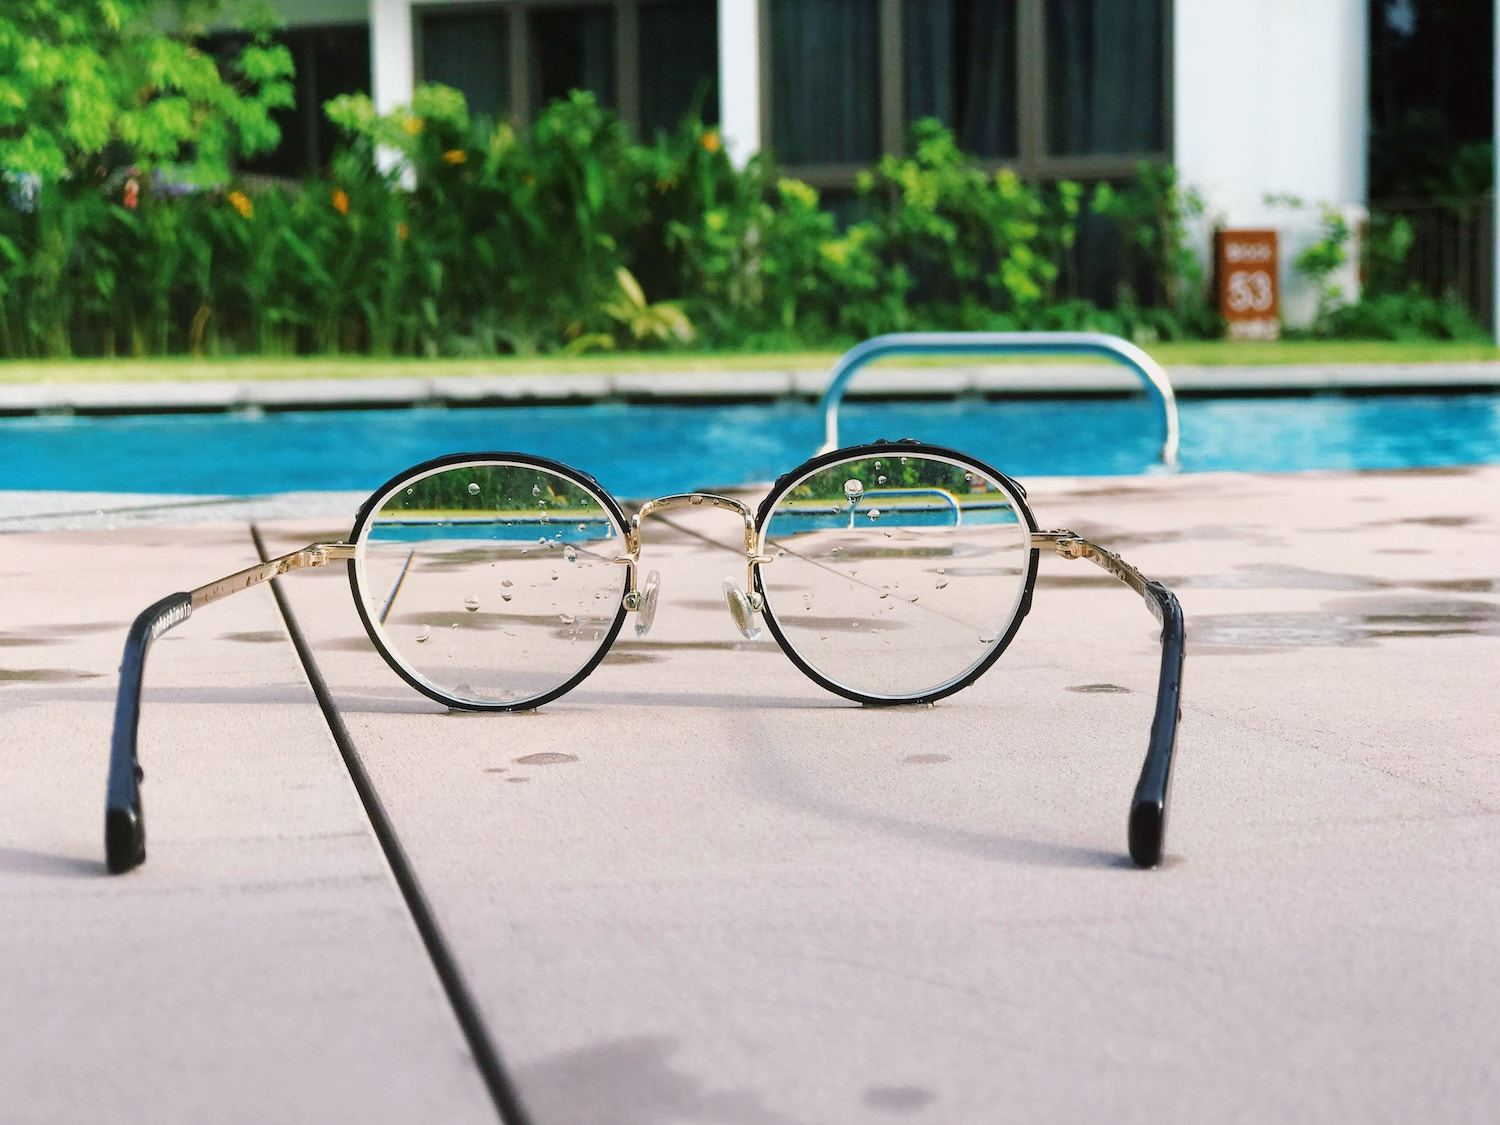 pair of glasses in front of pool